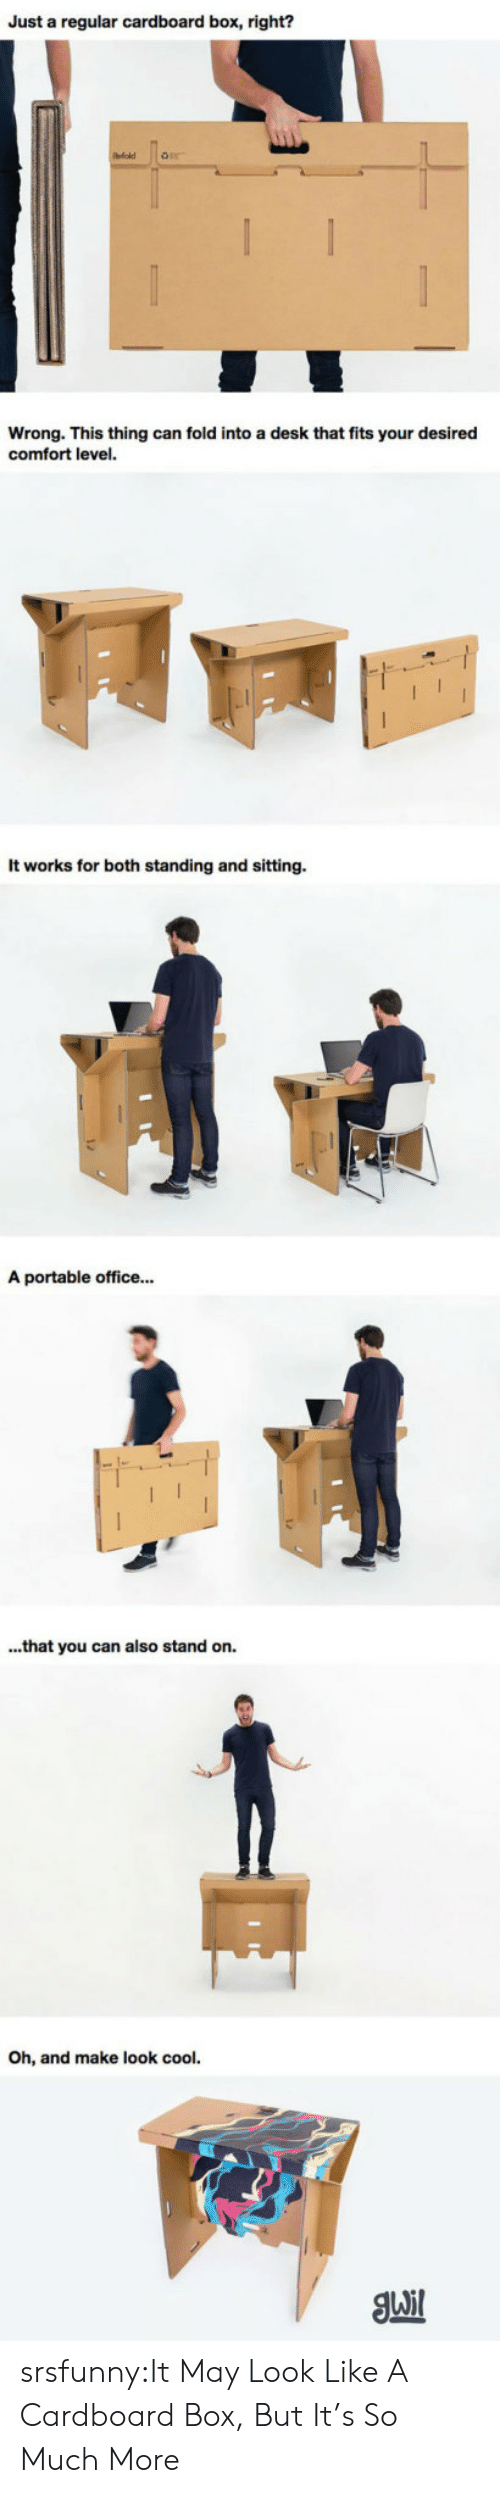 cardboard box: Just a regular cardboard box, right?  Wrong. This thing can fold into a desk that fits your desired  comfort level.  It works for both standing and sitting  A portable office...  ...that you can also stand on.  h, and make look cool. srsfunny:It May Look Like A Cardboard Box, But It's So Much More